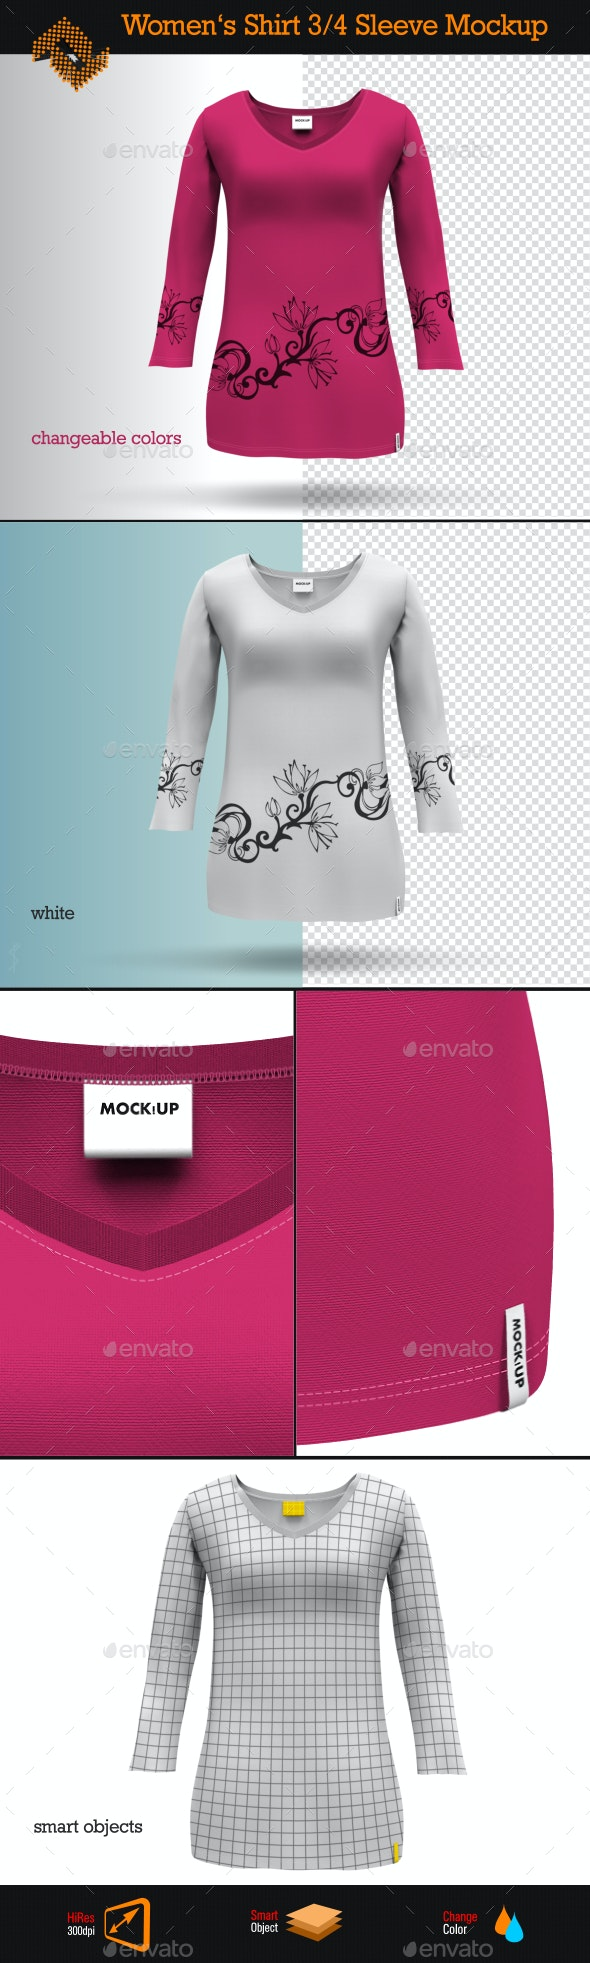 Womens 3/4 Sleeve Shirt Mockup - Apparel Product Mock-Ups